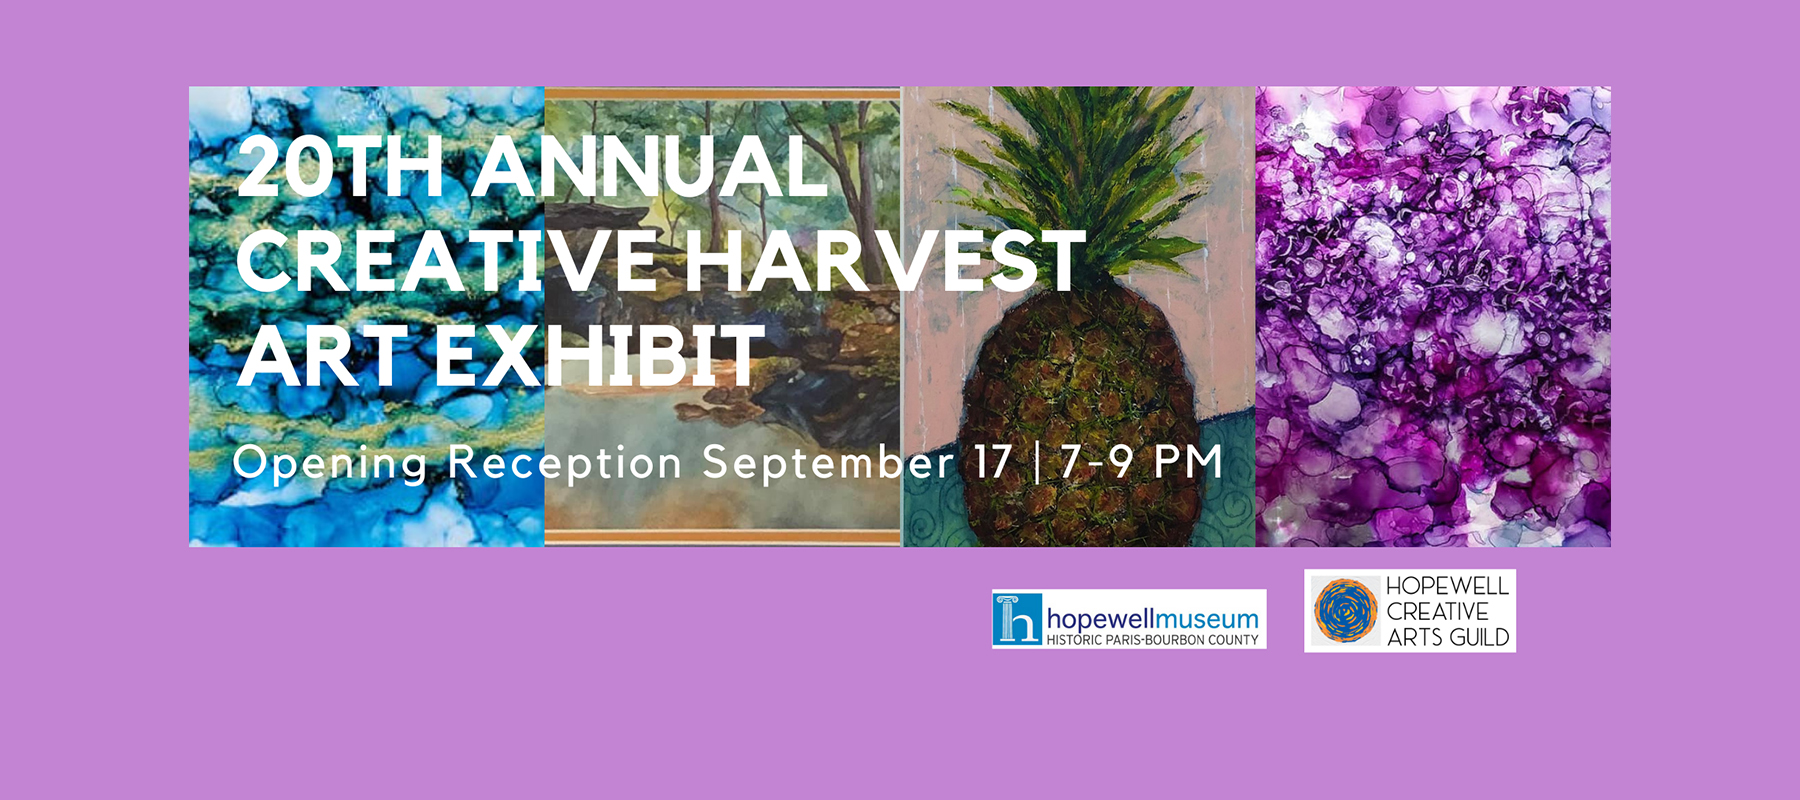 20th Annual Creative Harvest Art Exhibit Opening Reception September 17, 7-9 pm